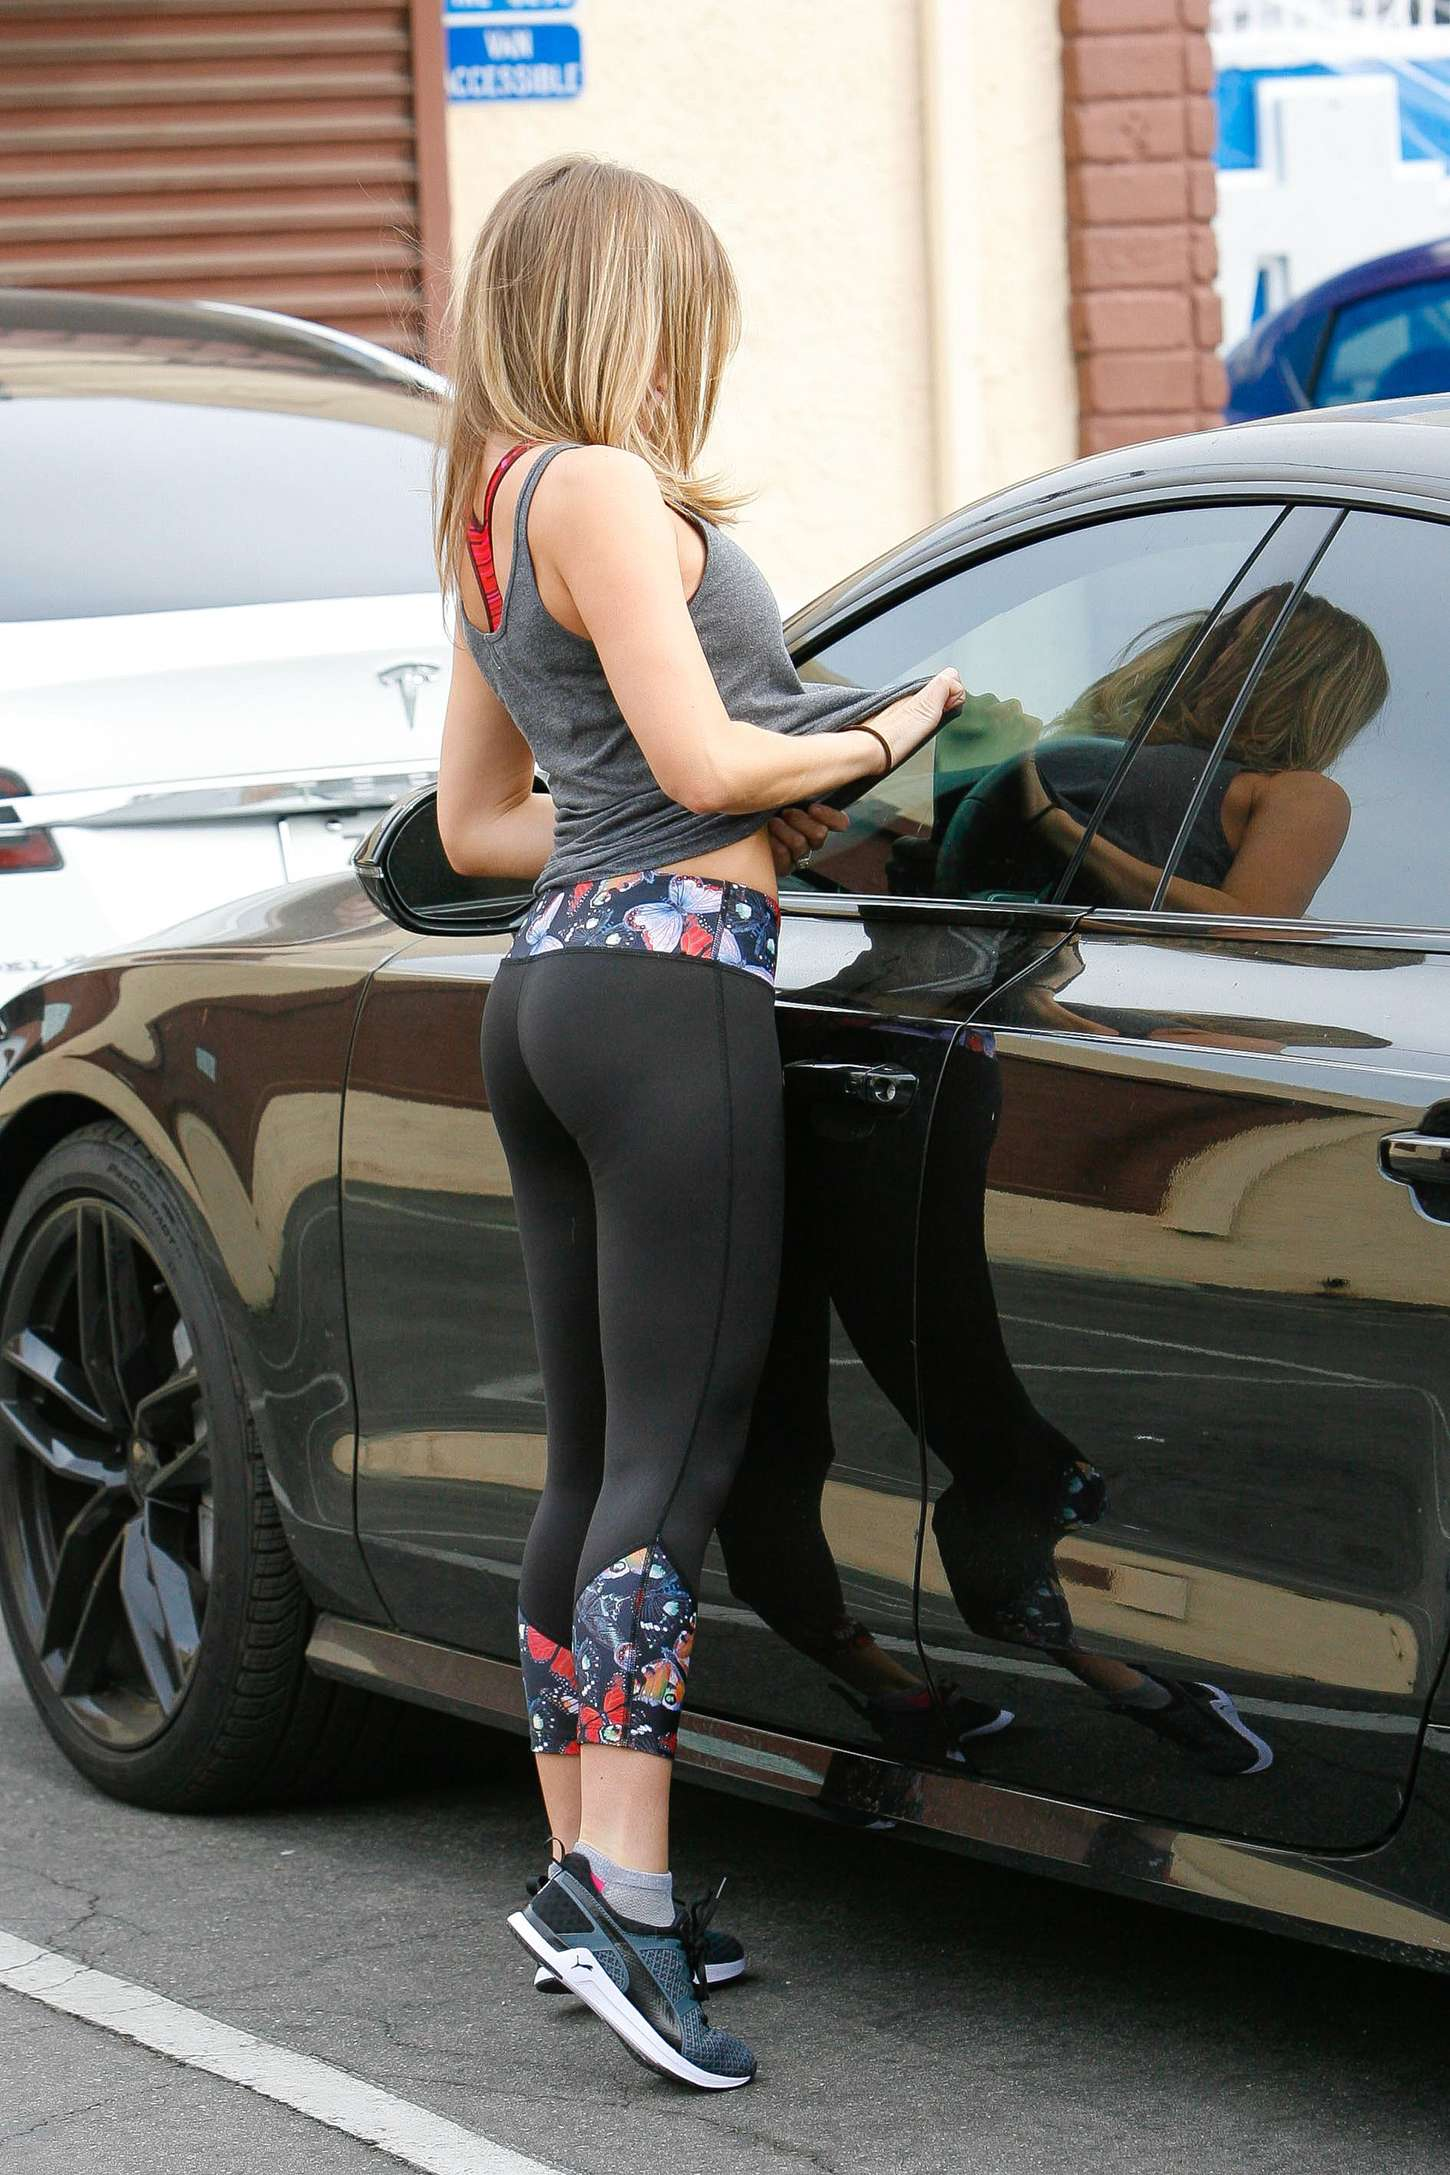 Hollywood Celeb In Spandex Photo 23